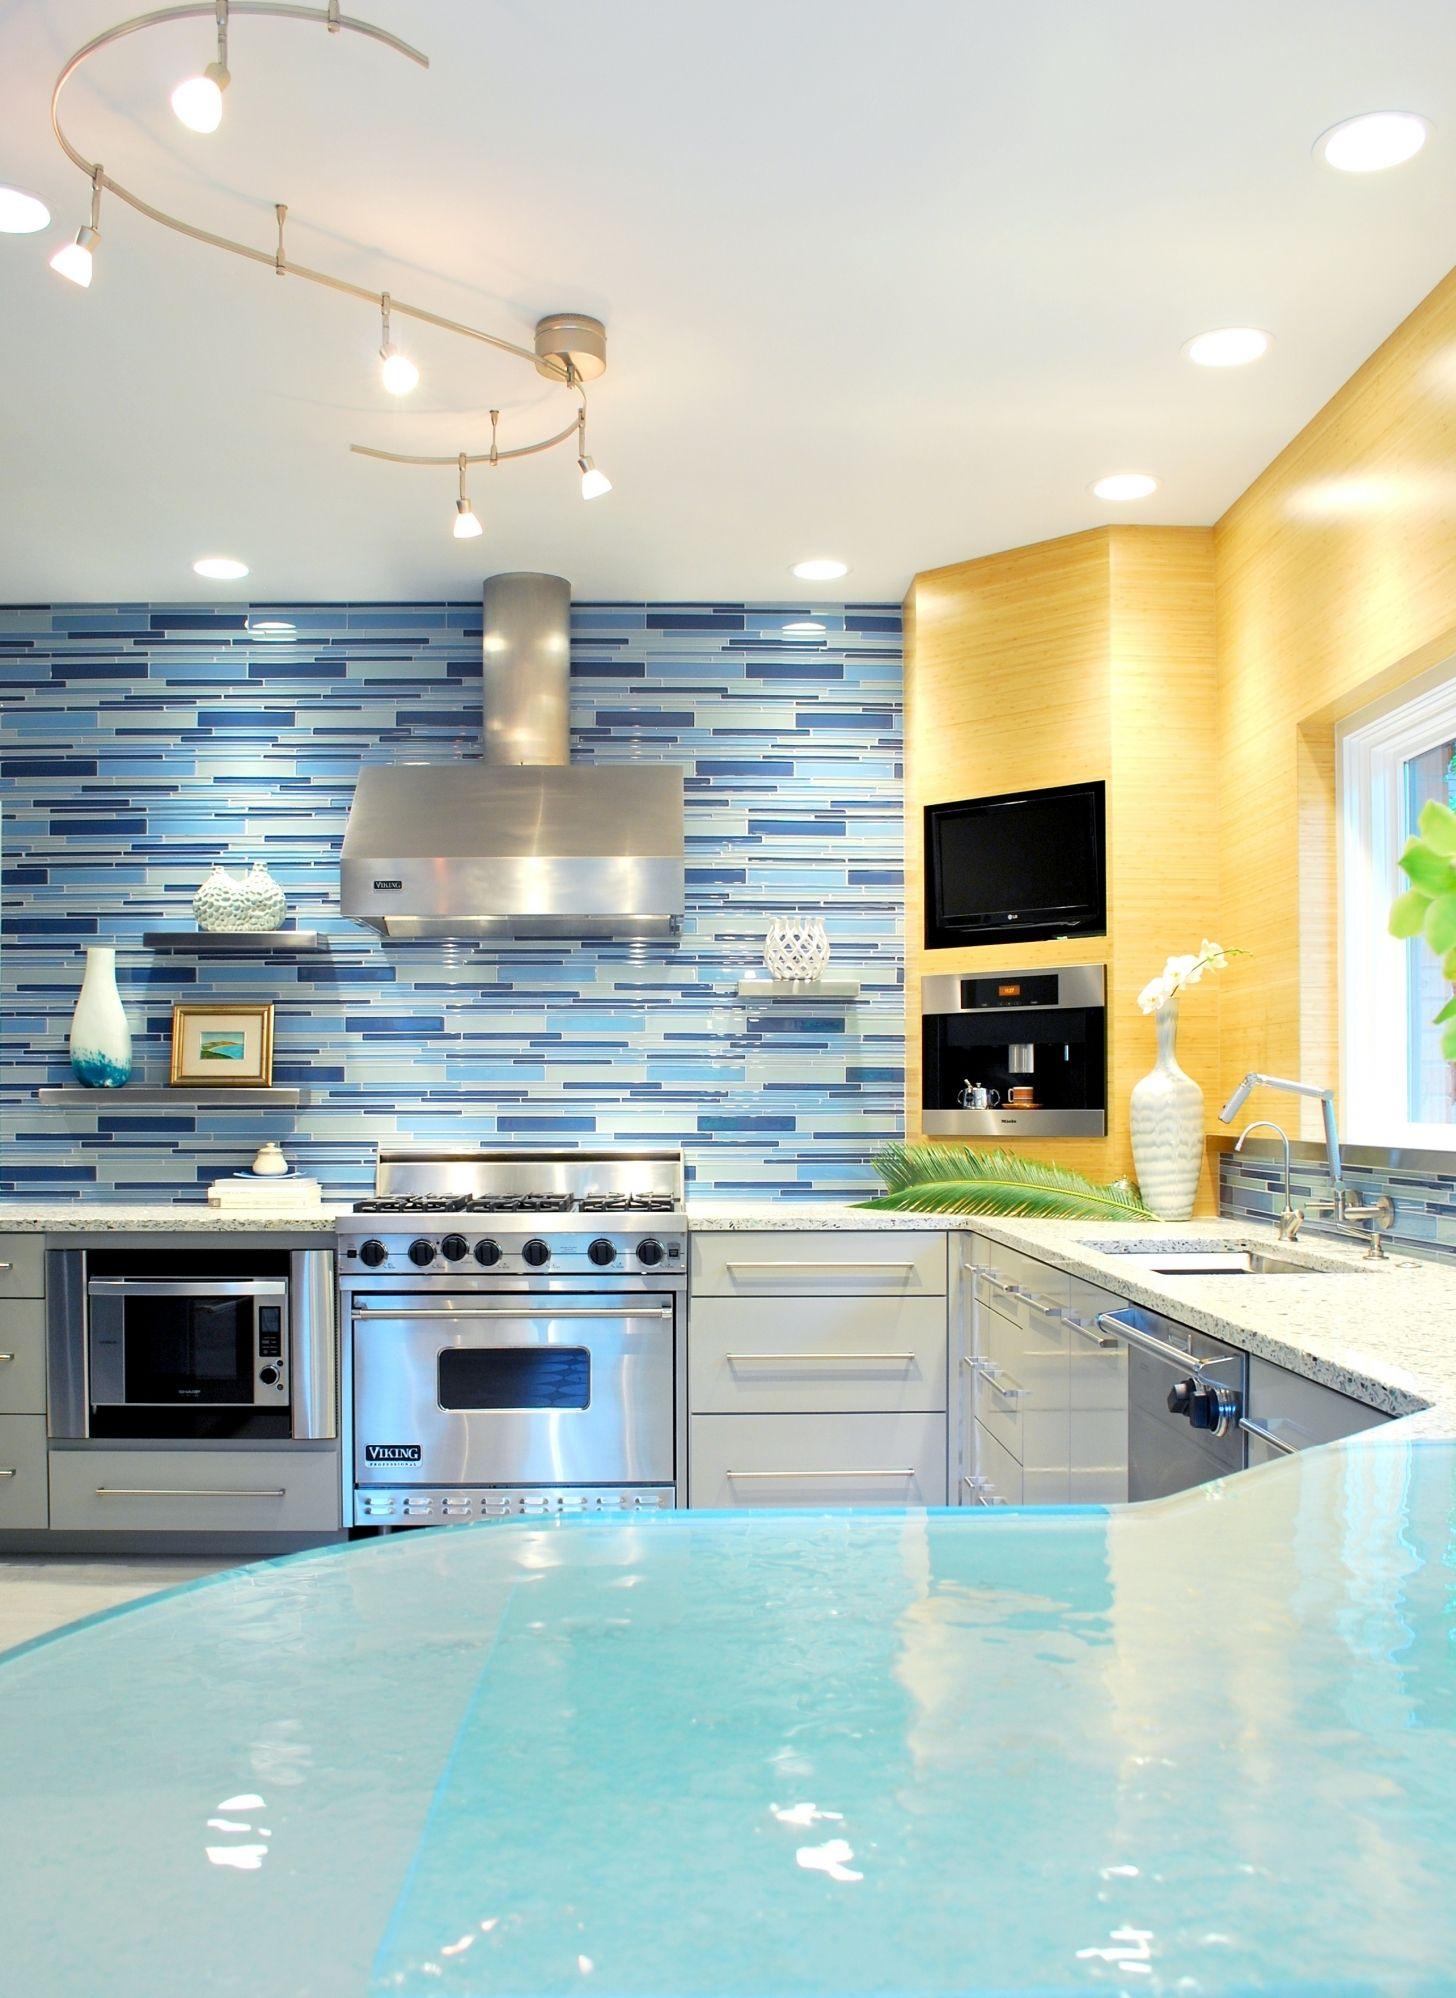 21 Stunning Kitchen Ceiling Design Ideas | White ceiling and Blue ...